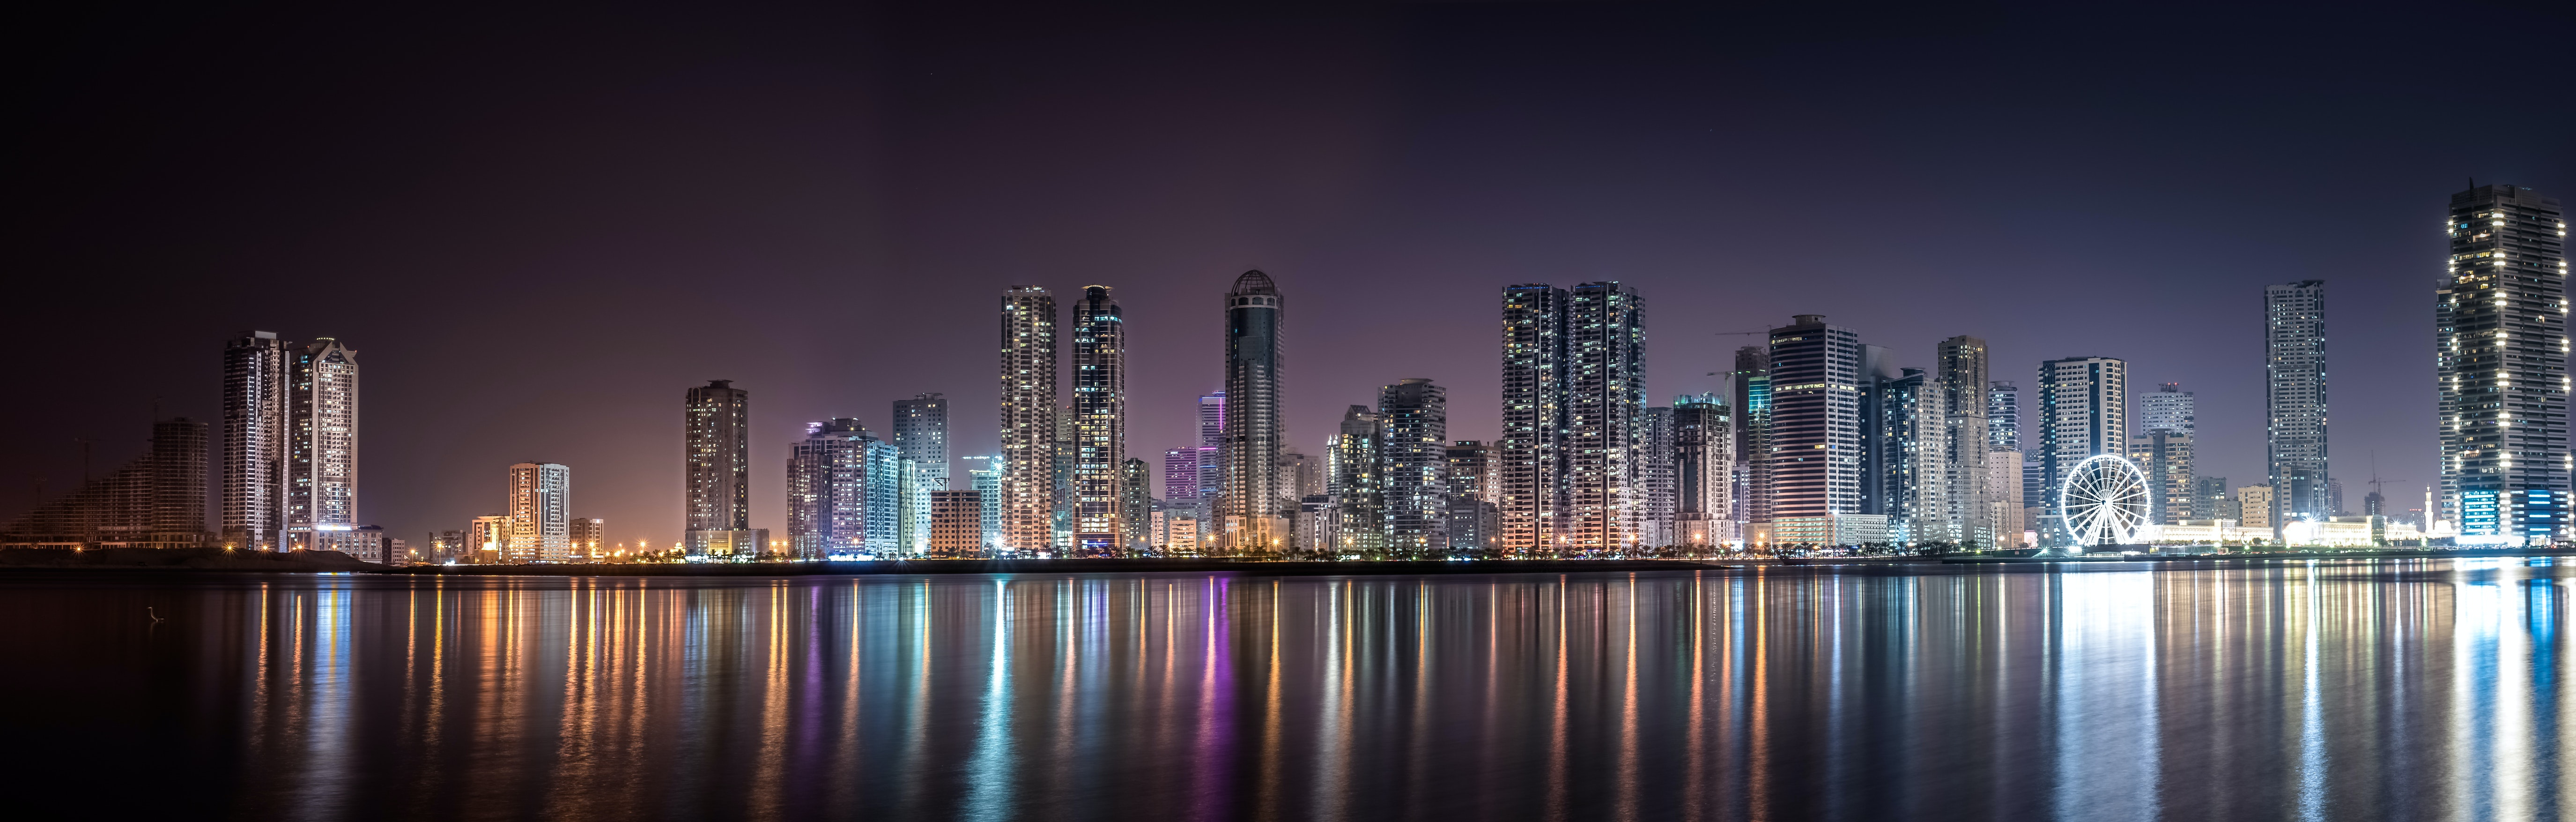 Photographing Cities At Night: Panoramic View Of City Lit Up At Night · Free Stock Photo